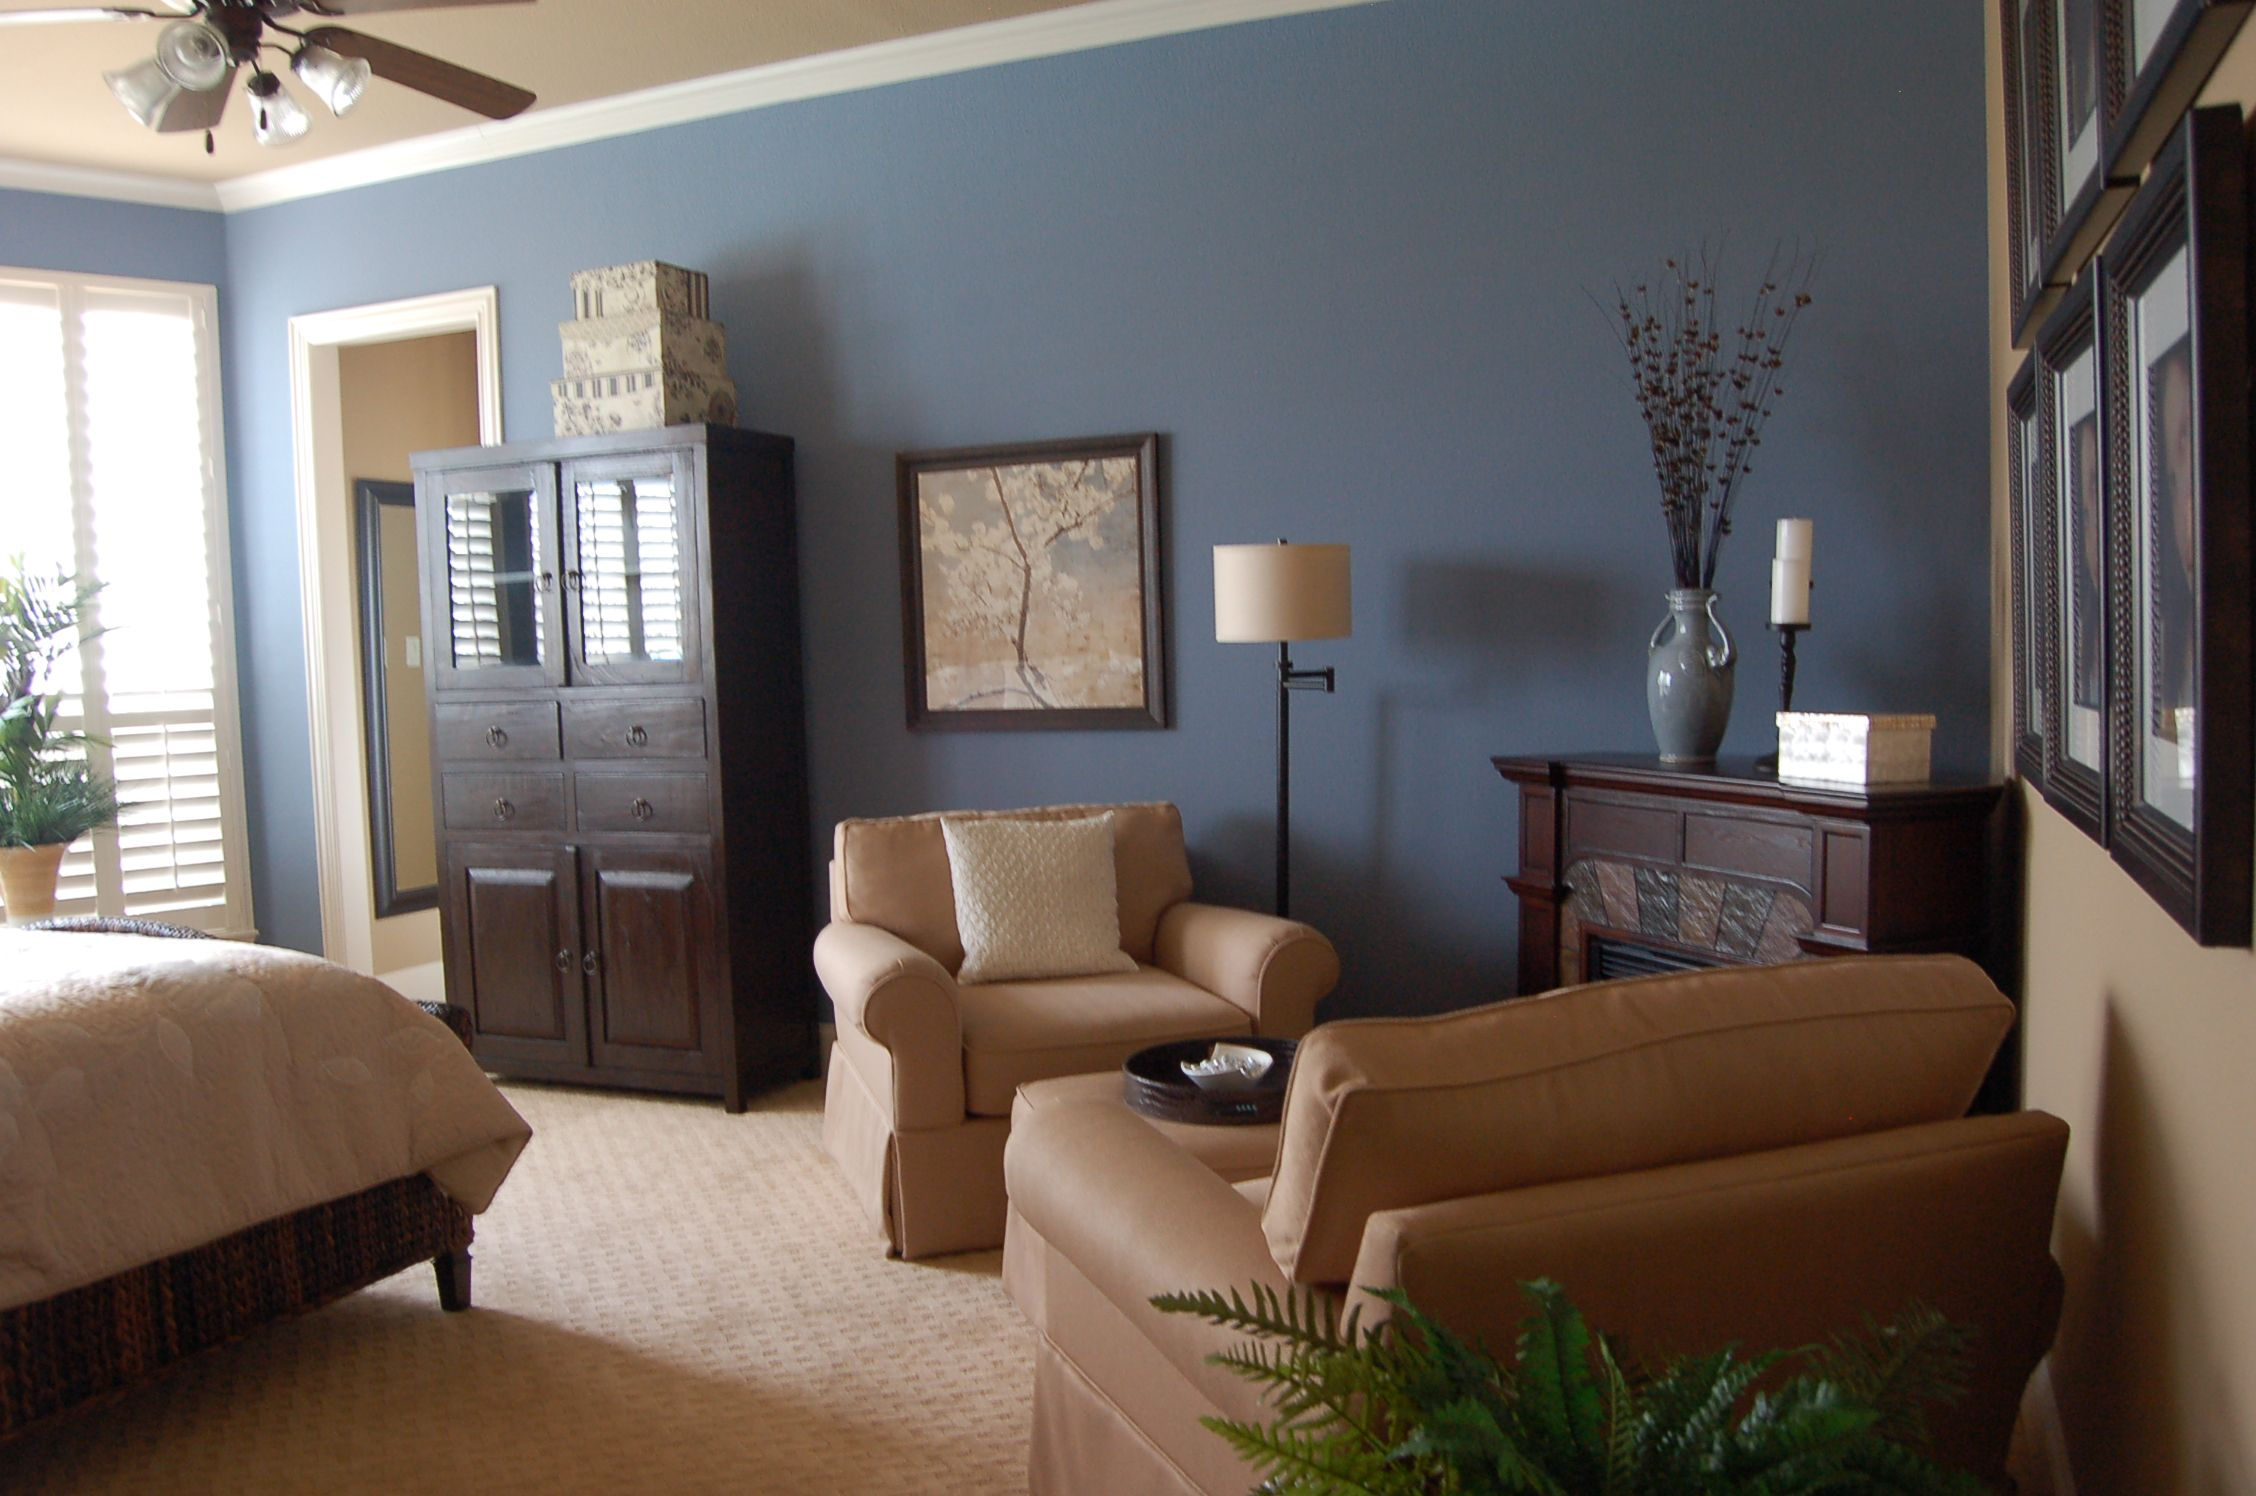 Sherwin Williams Bracing Blue 6242 And Latte 6108 Paint For The Master Bedroom And Bathroom